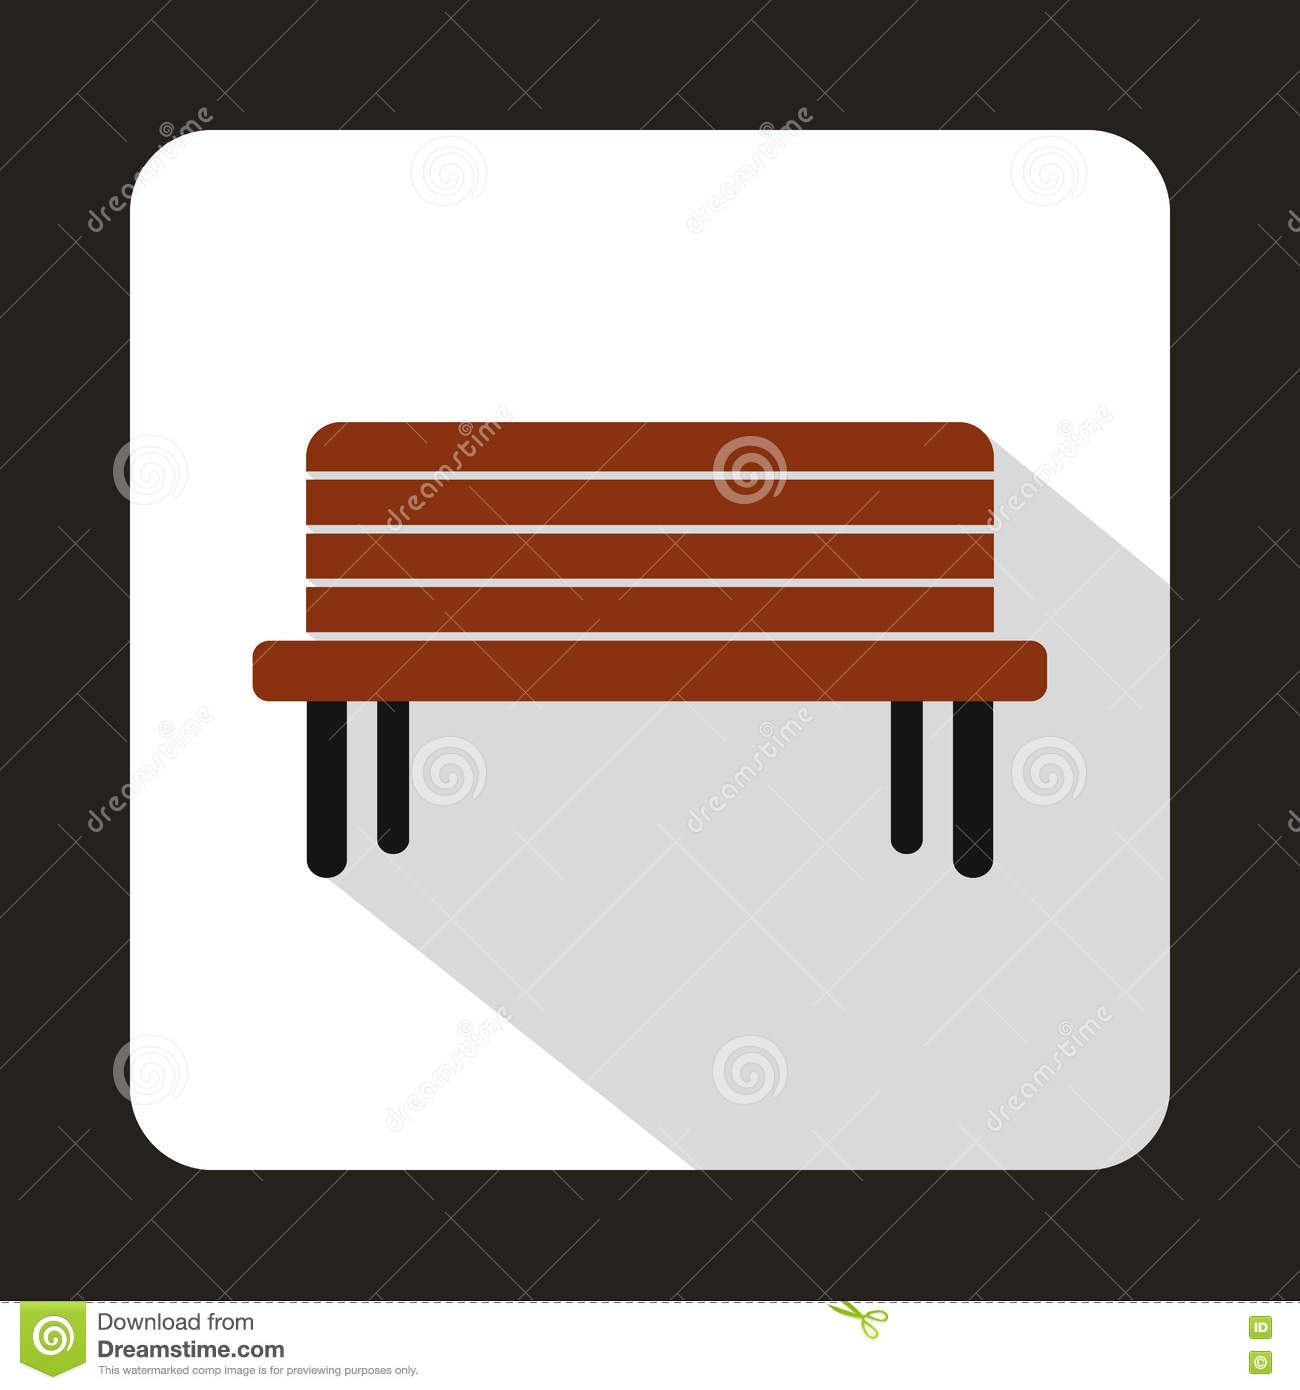 Street bench icon flat style stock vector image 81984282 street bench icon flat style biocorpaavc